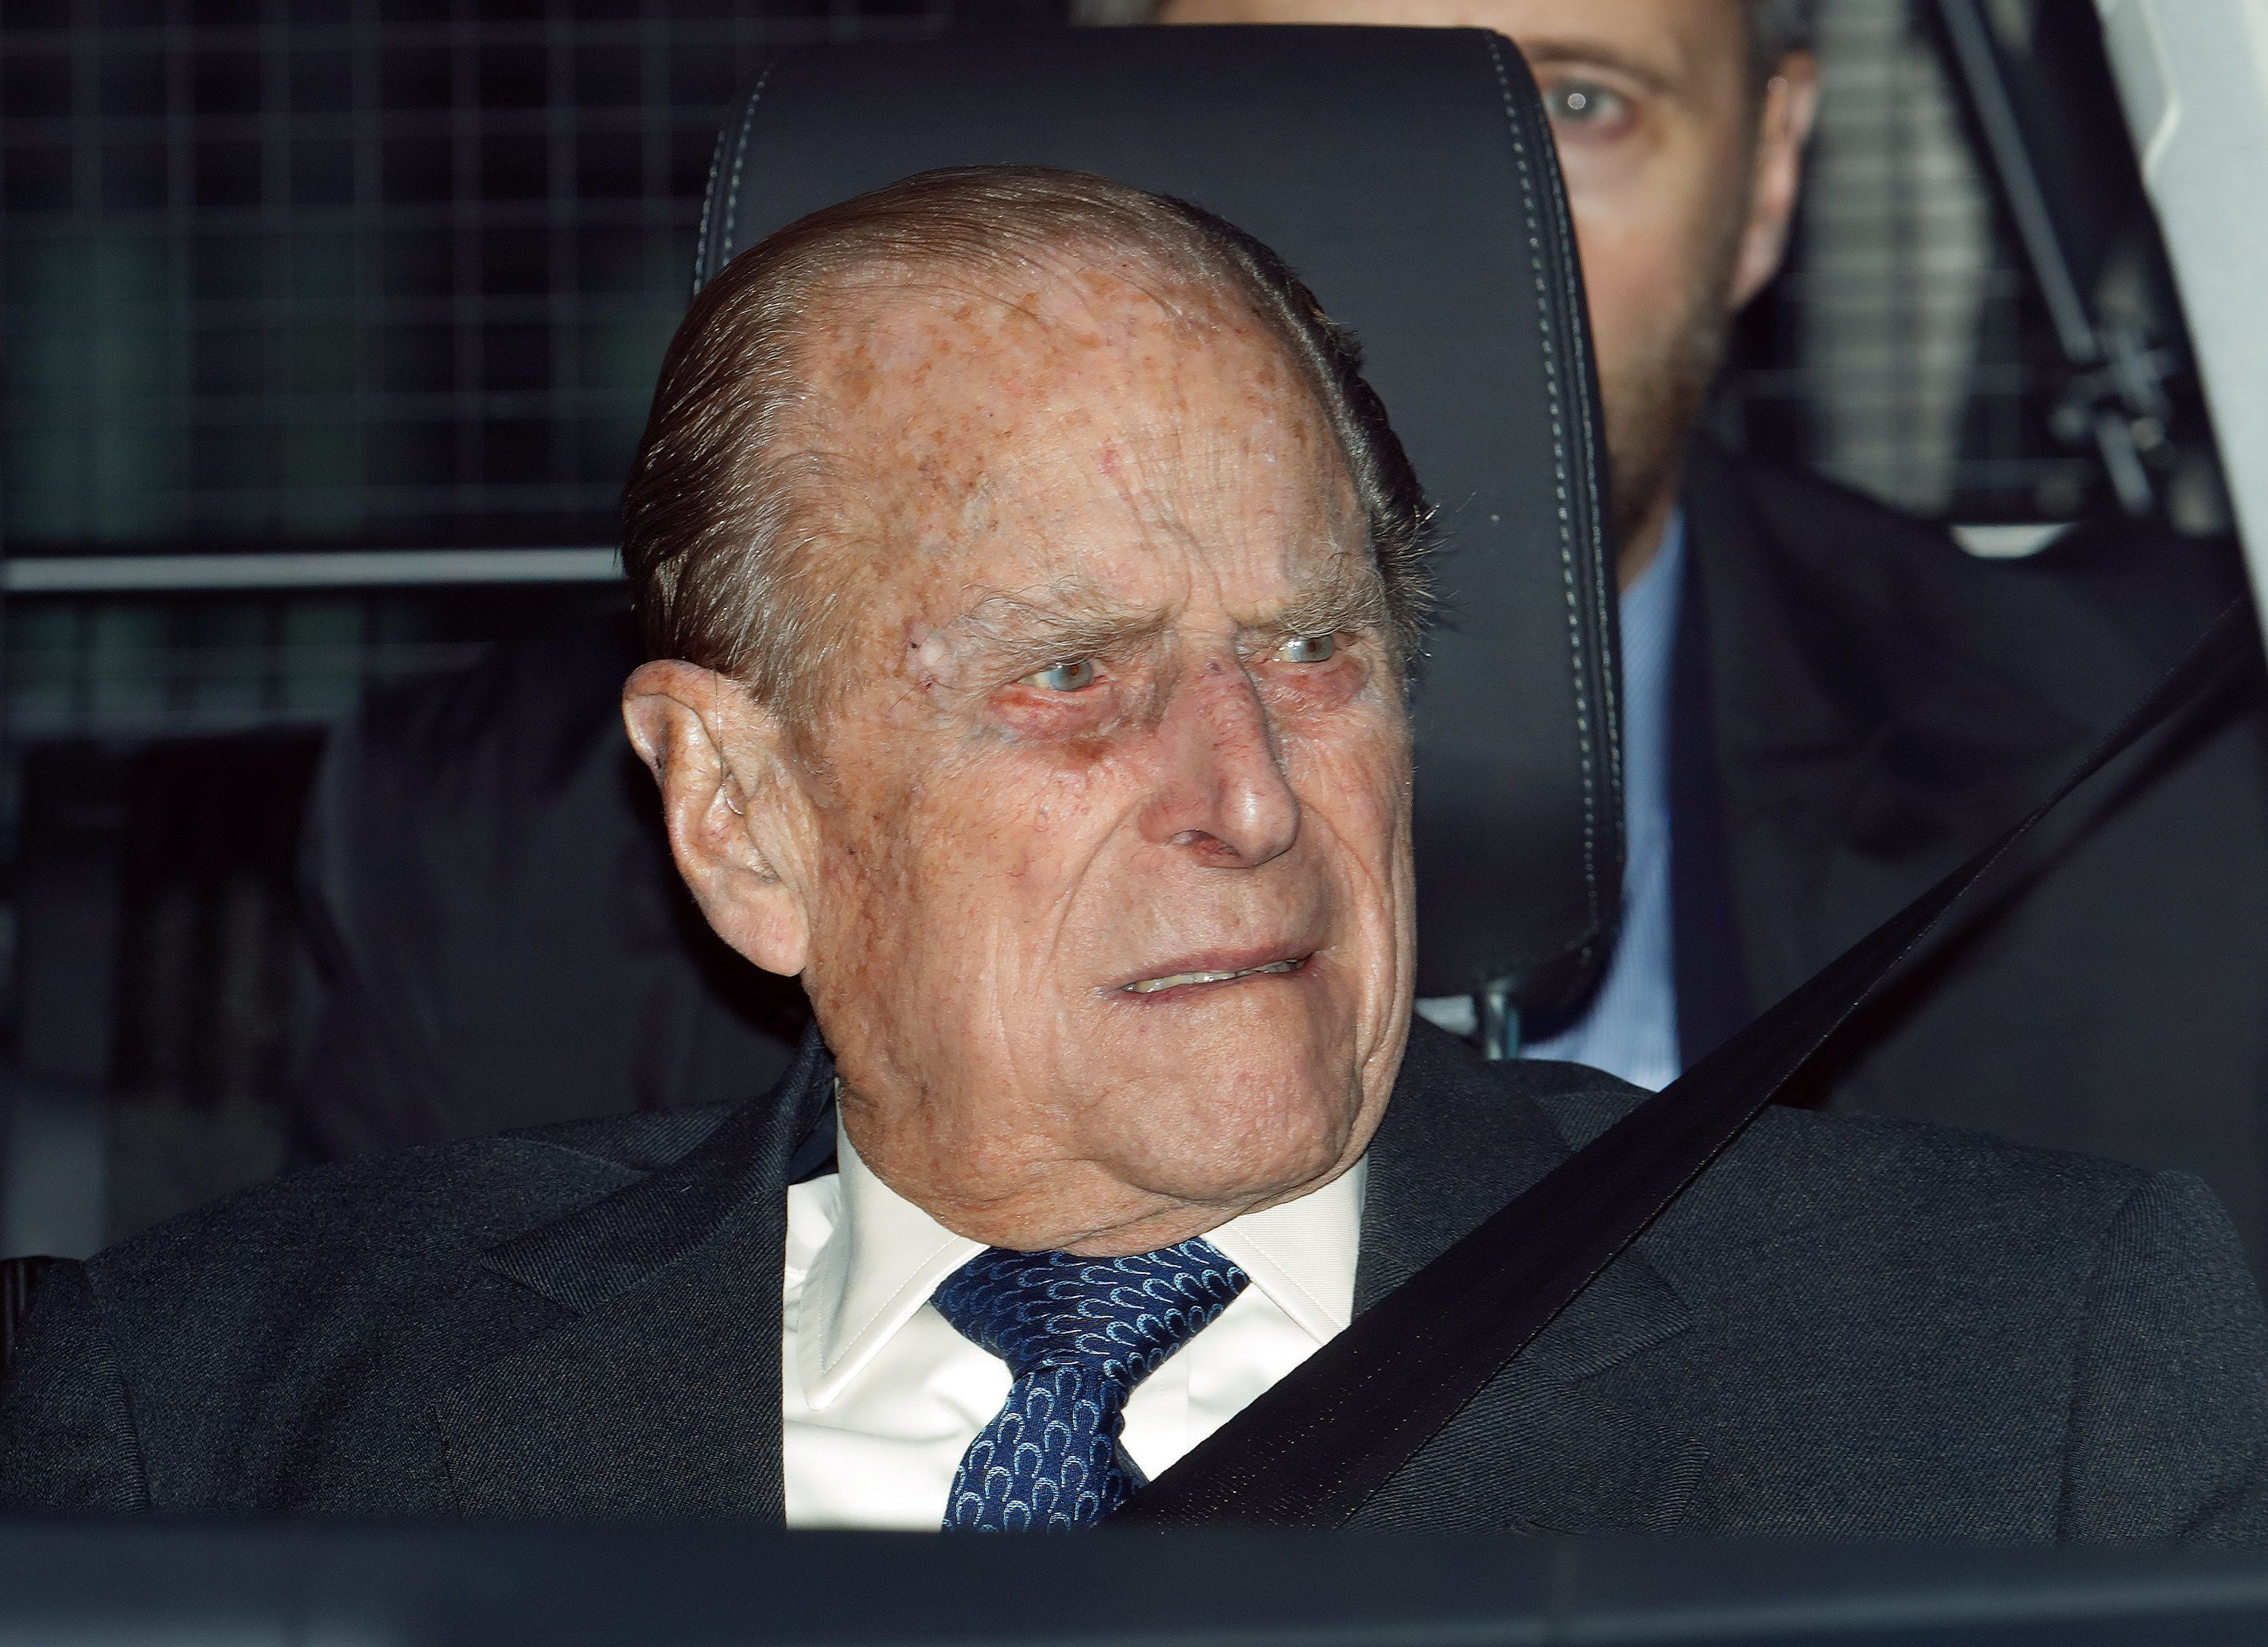 Prince Philip, 97, gives up licence after furore over car crash